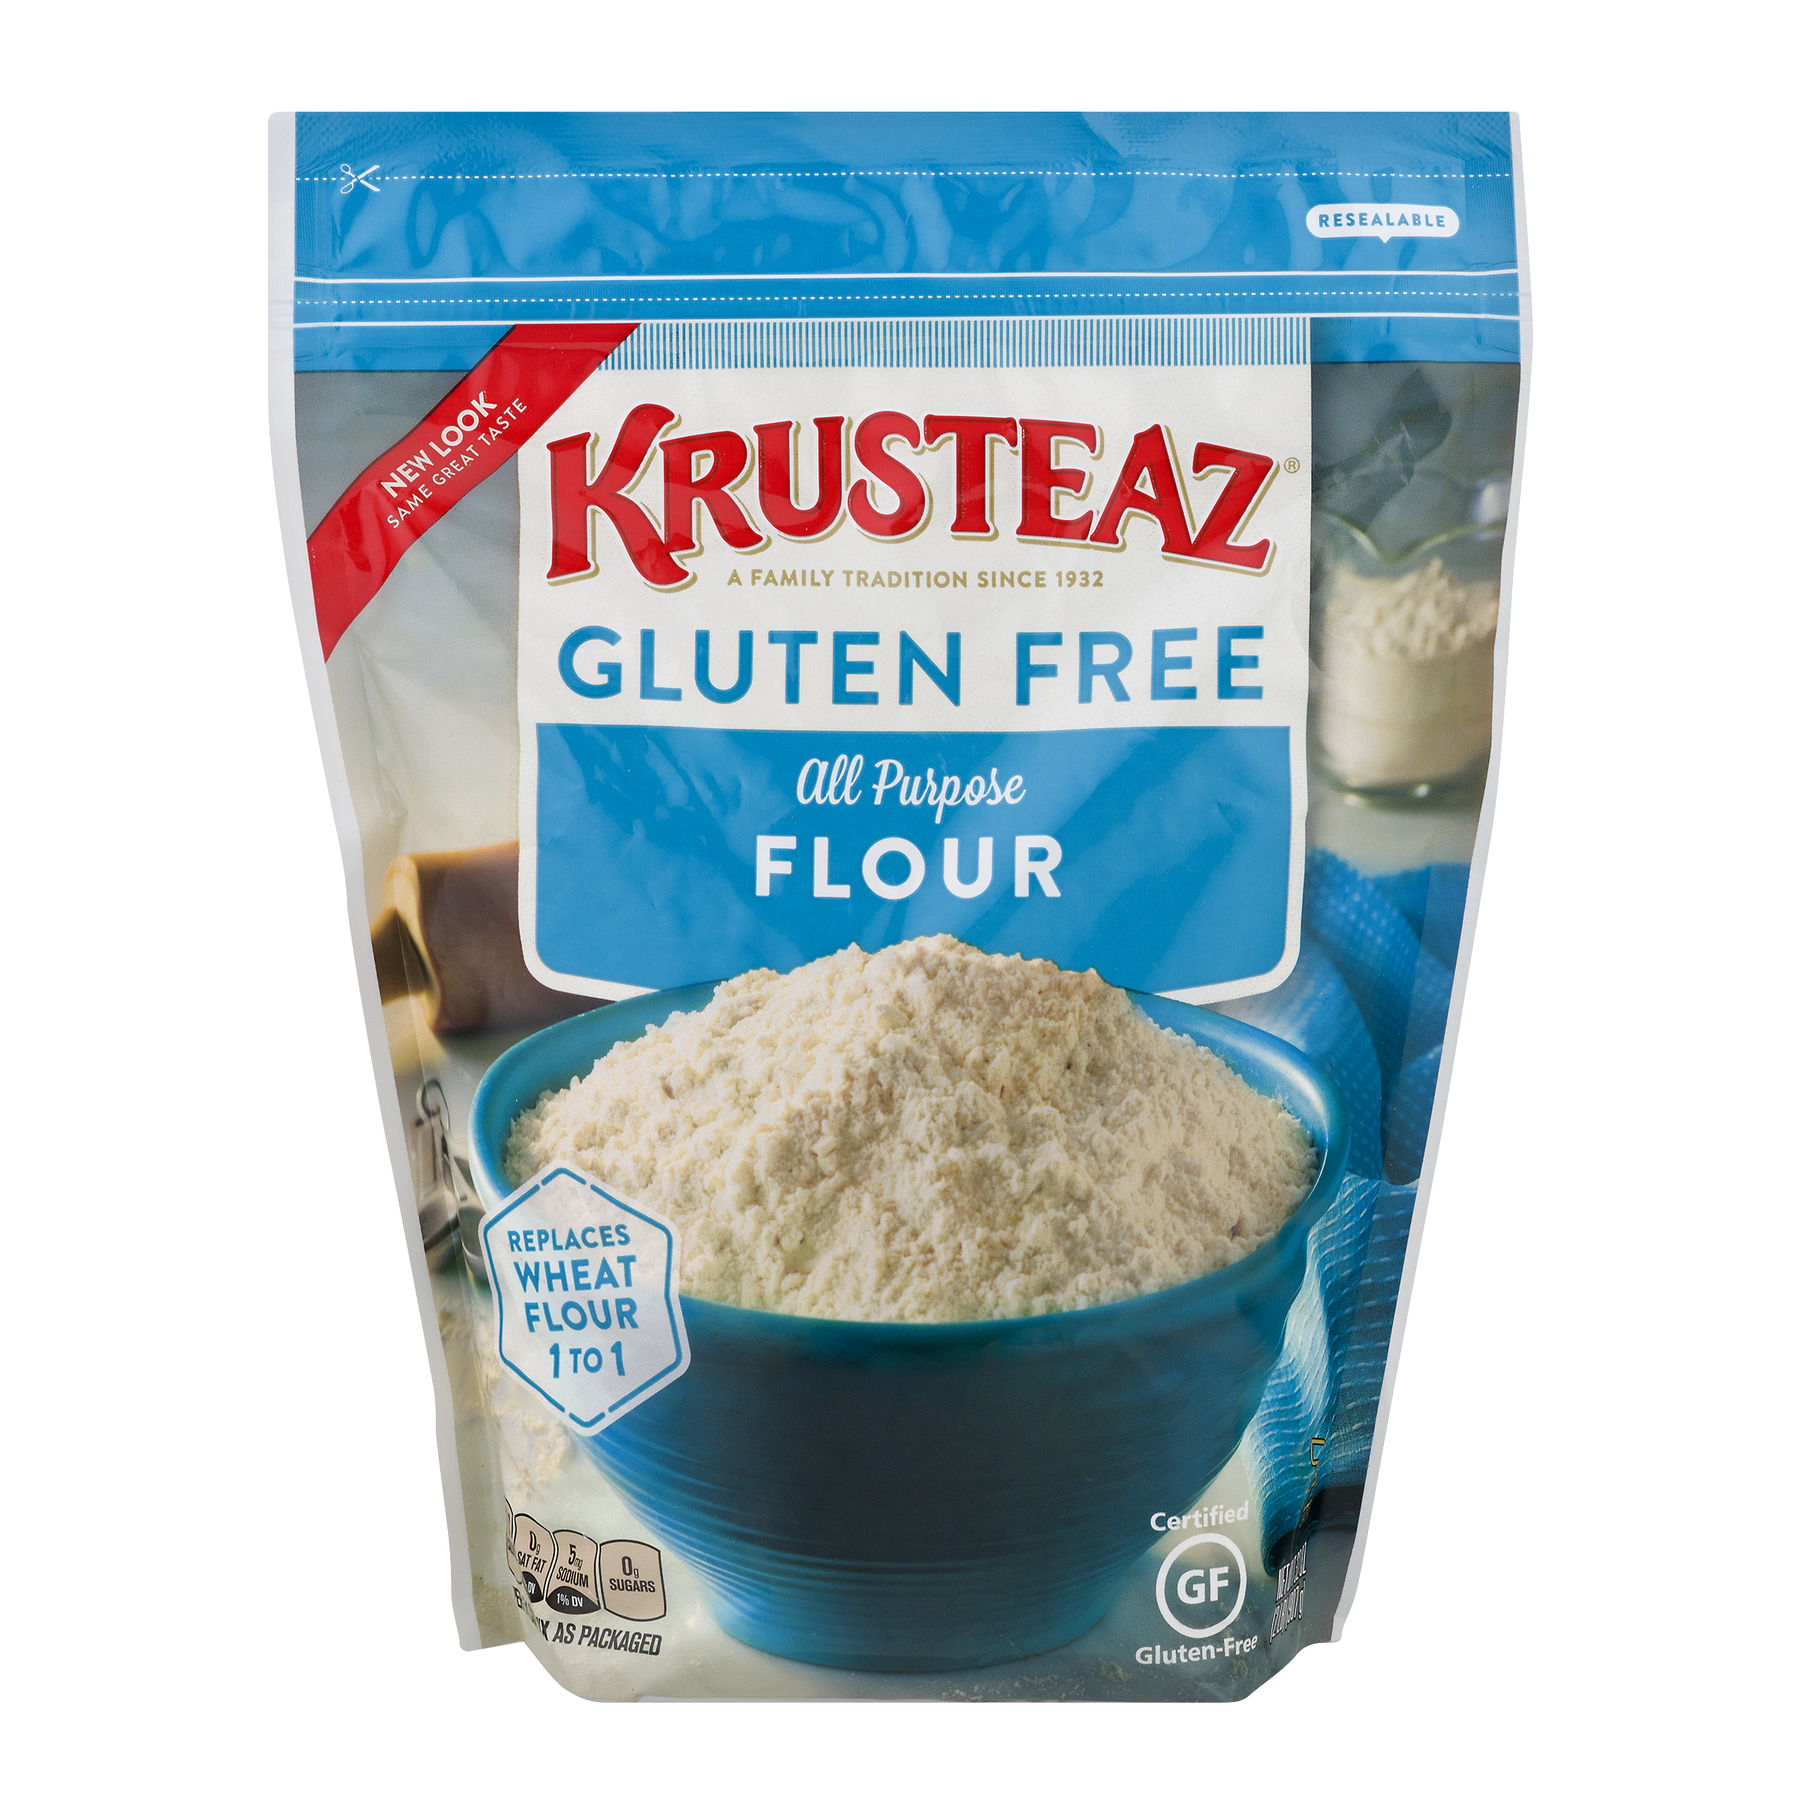 Krusteaz Gluten Free All Purpose Flour Mix, 32-Ounce